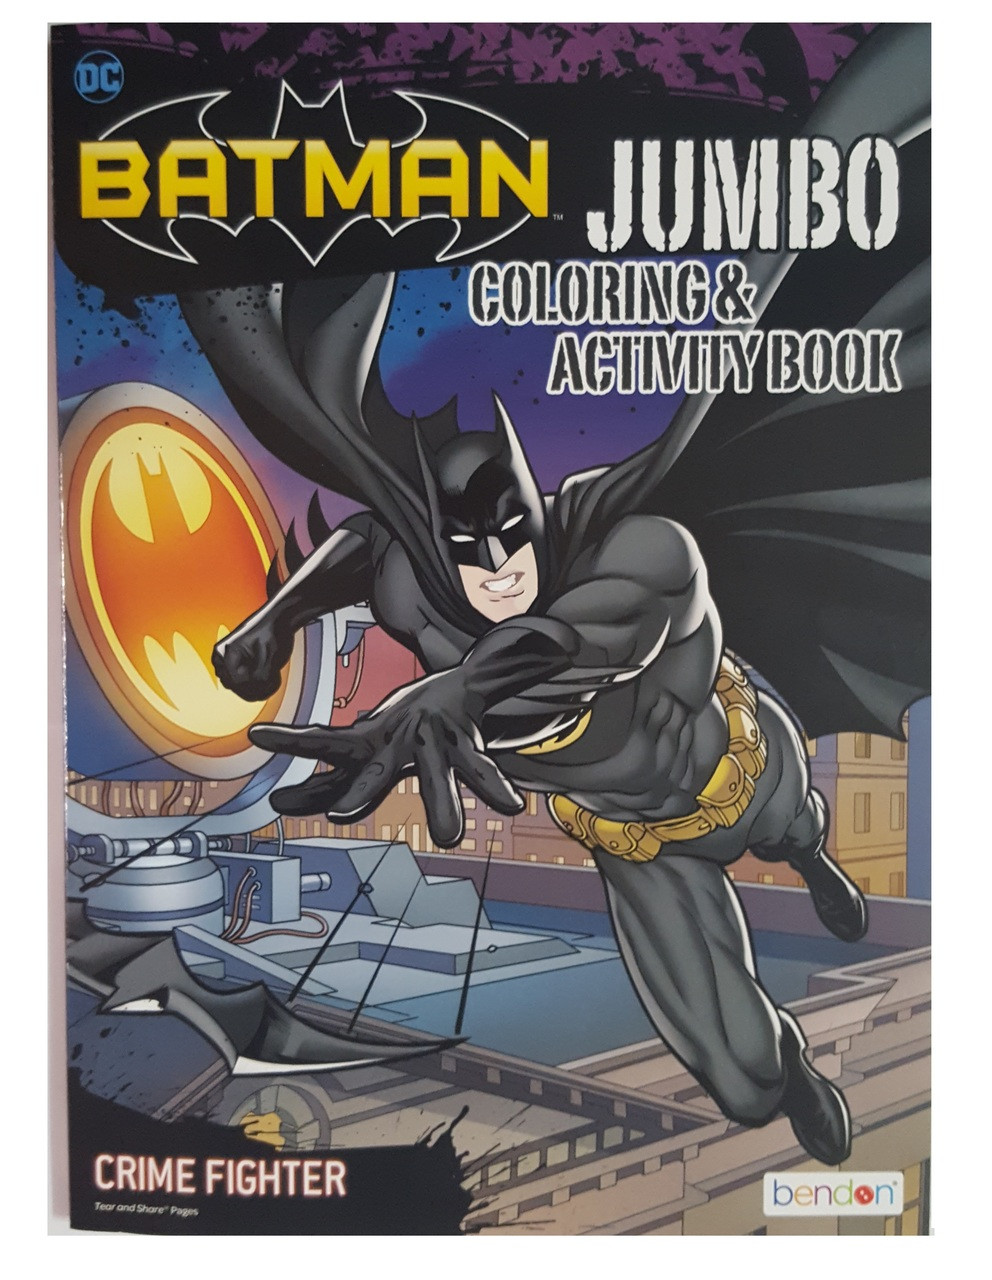 Batman 96P Jumbo Coloring and Activity Book -Crime Fighter